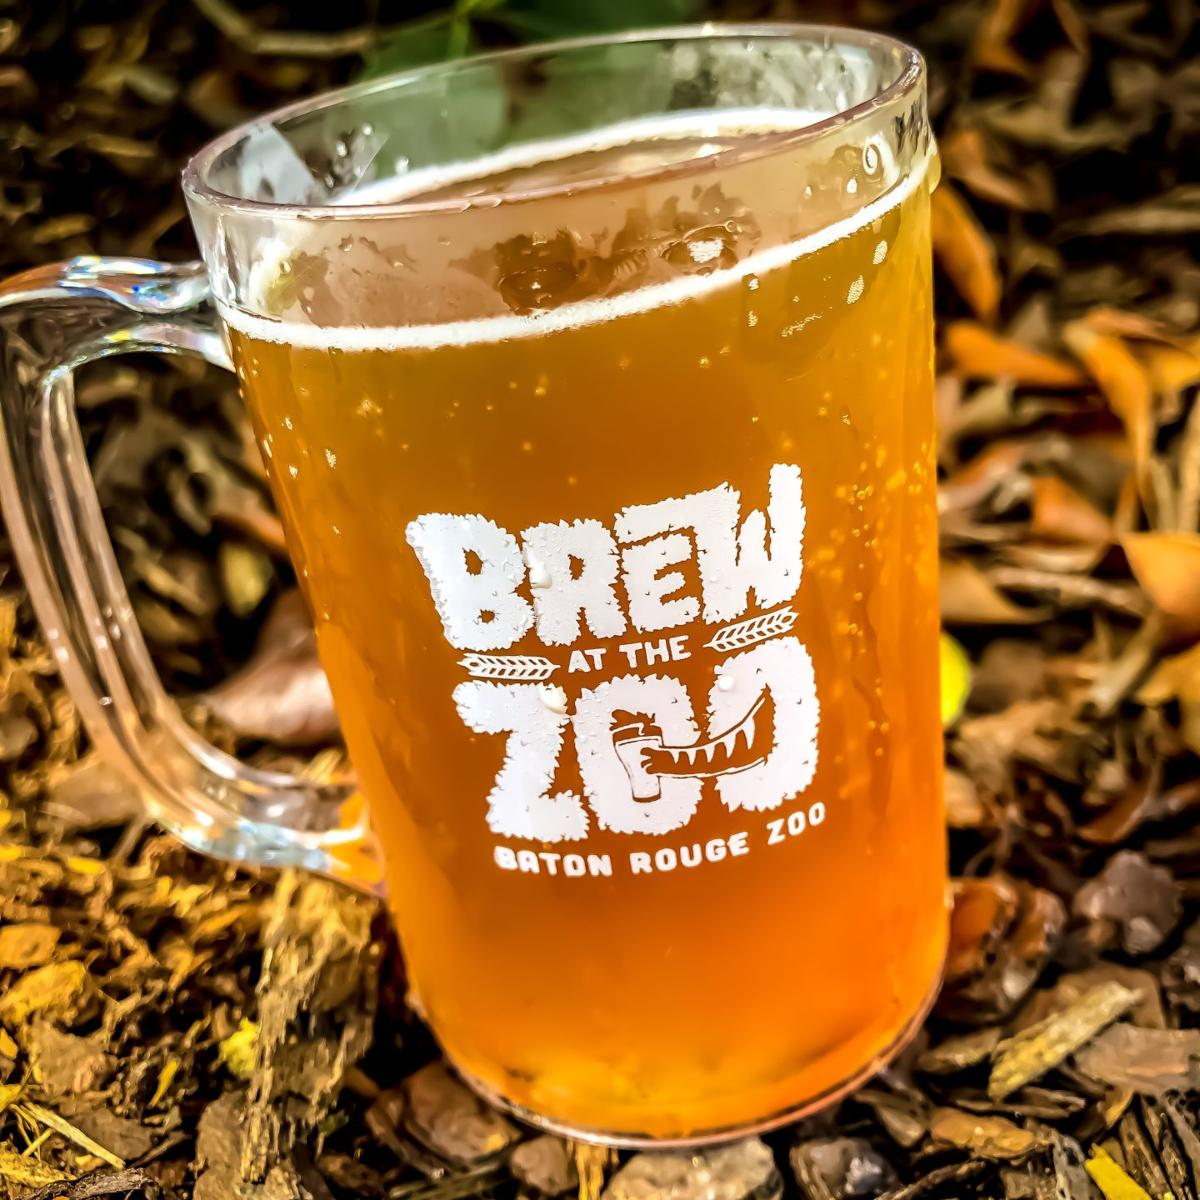 Brew_at_the_Zoo._PHOTO_BY_BRENTON_DAY